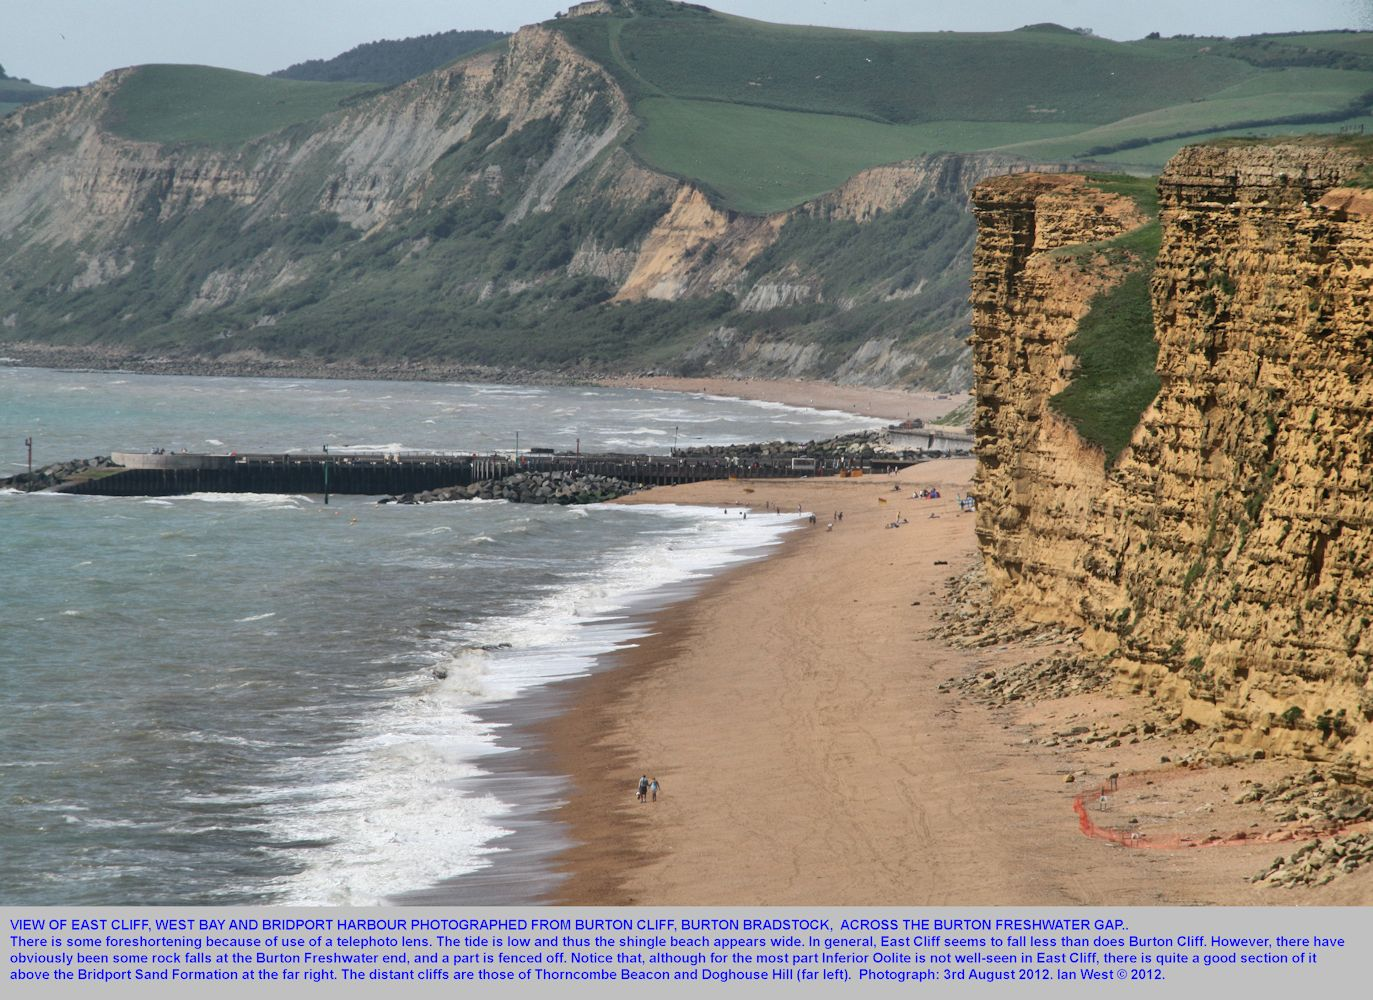 A view of East Cliff, West Bay, seen across the Burton Freshwater gap from Burton Cliff, Burton Bradstock, Dorset, 3rd August 2012